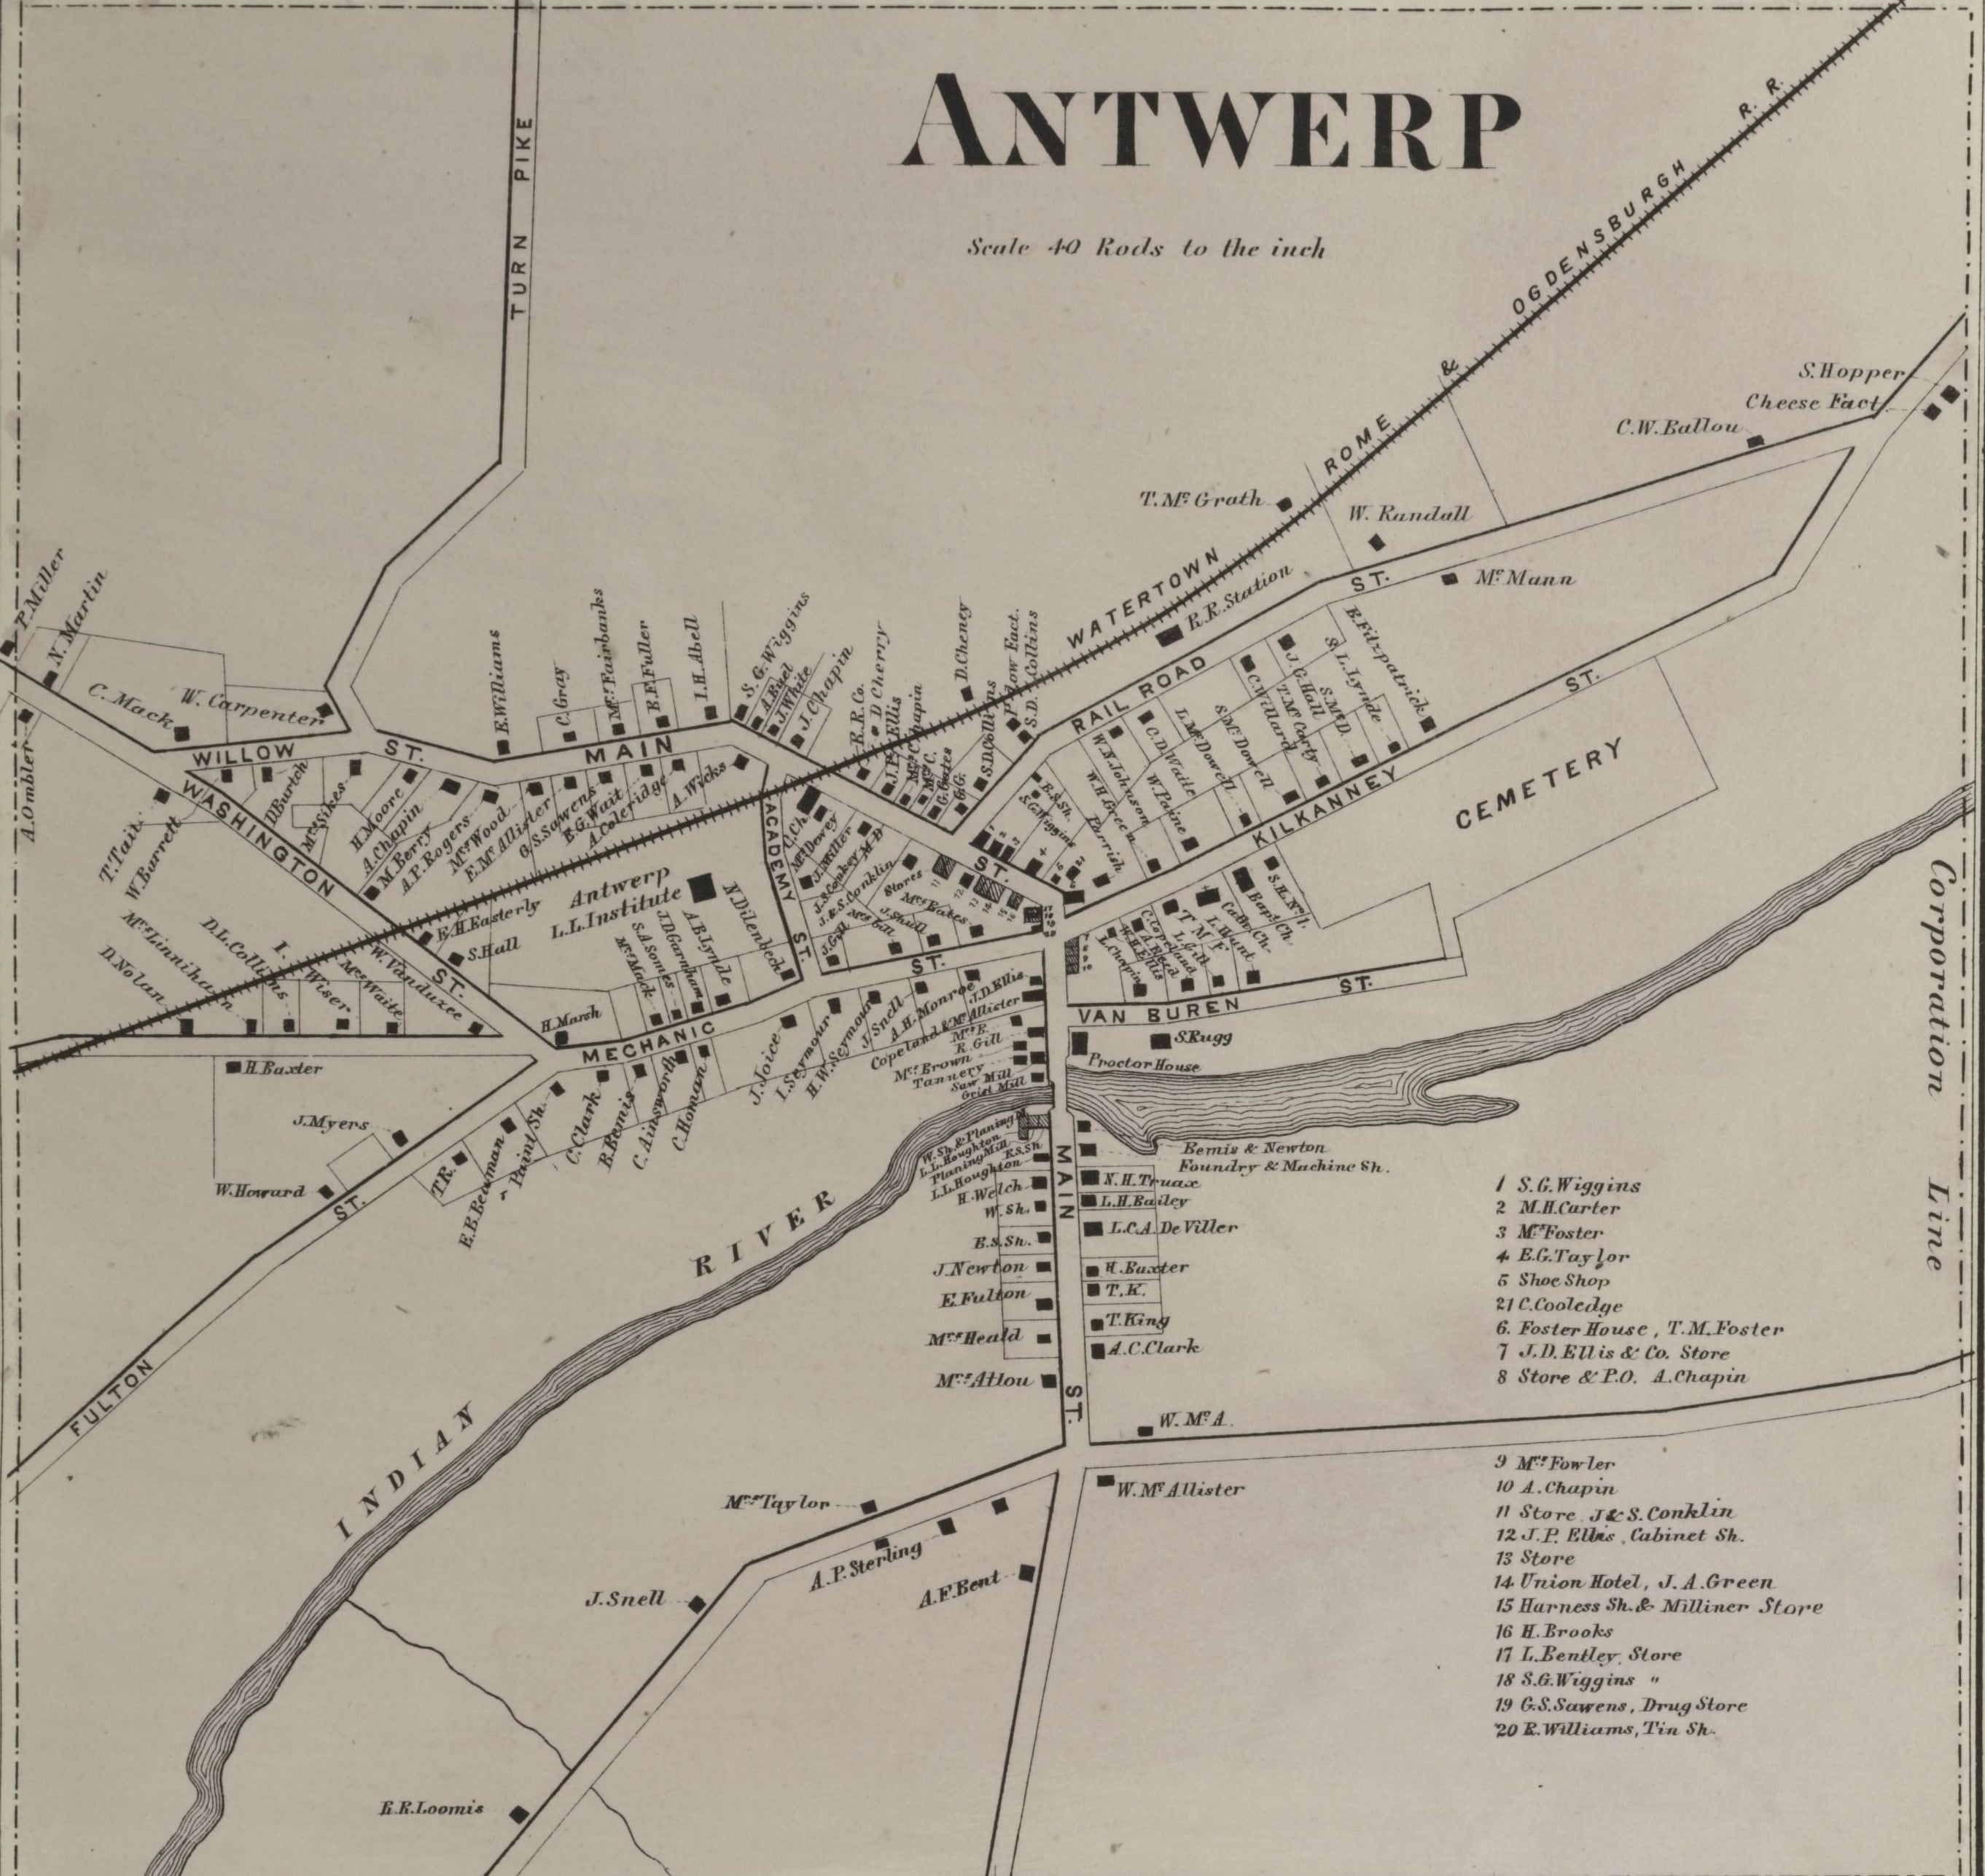 1864 Map of Antwerp, New York